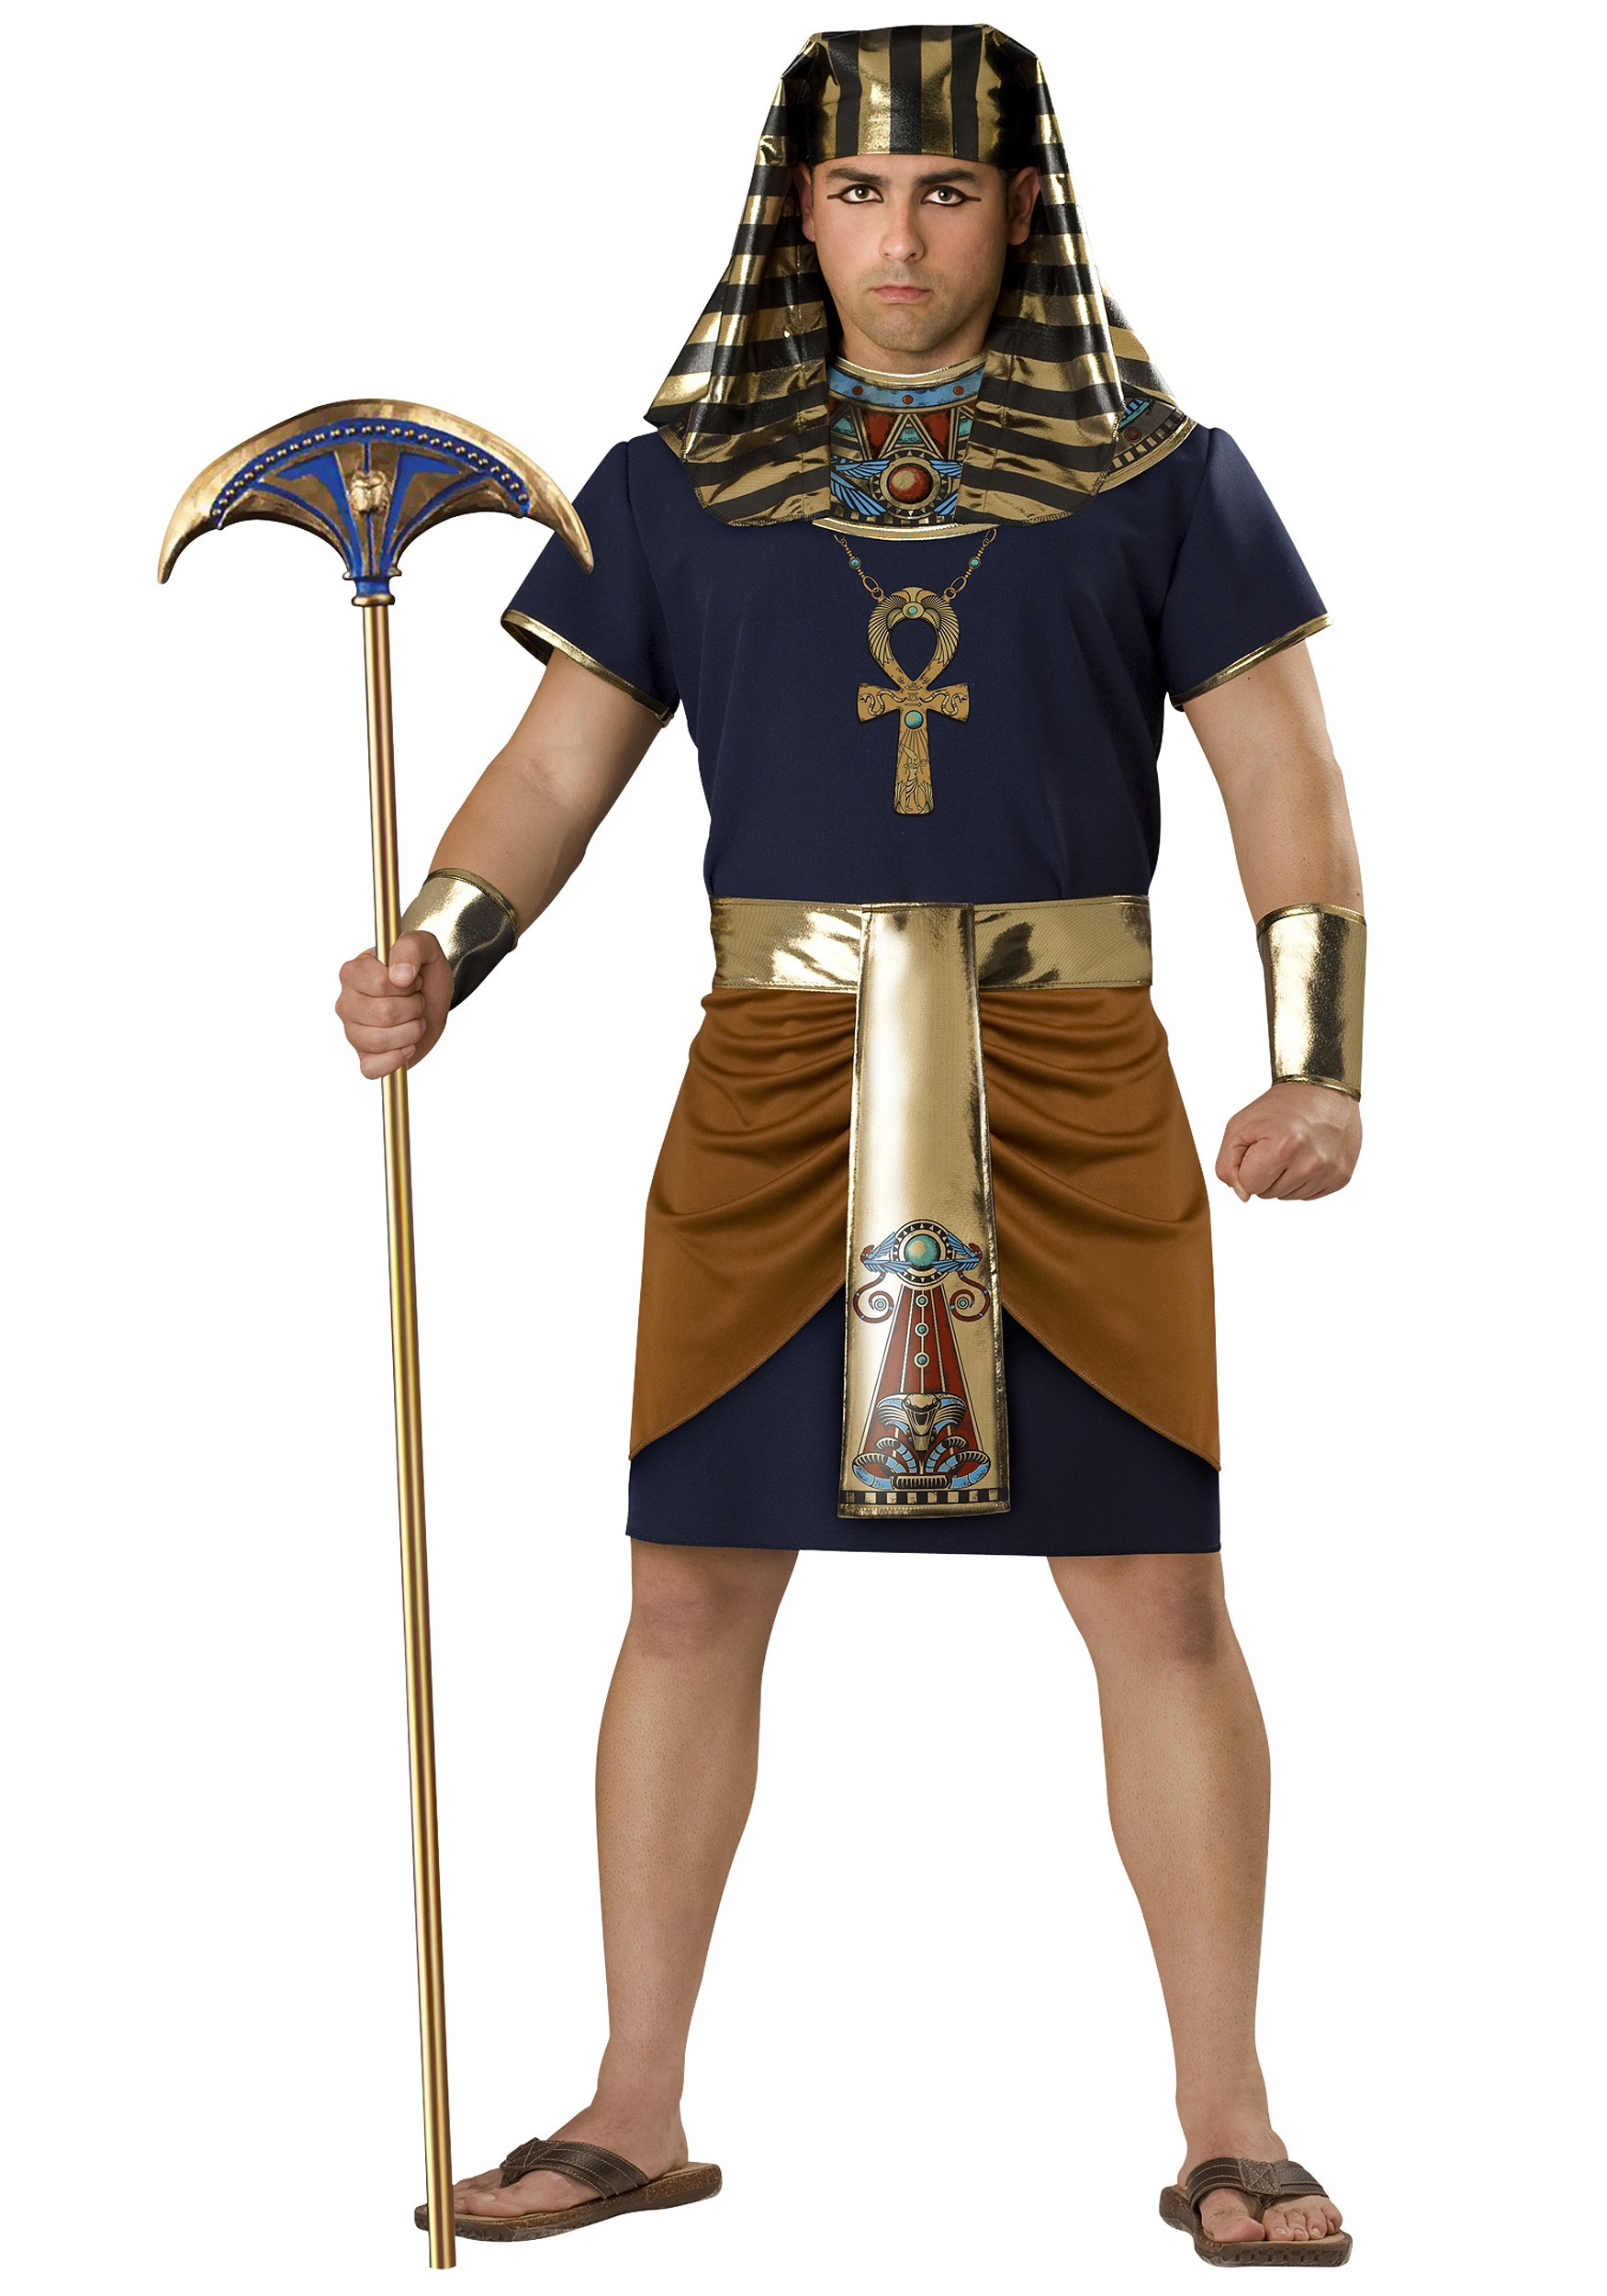 Plus size mens costumes adult plus size halloween costumes for men plus size egyptian pharaoh costume solutioingenieria Images